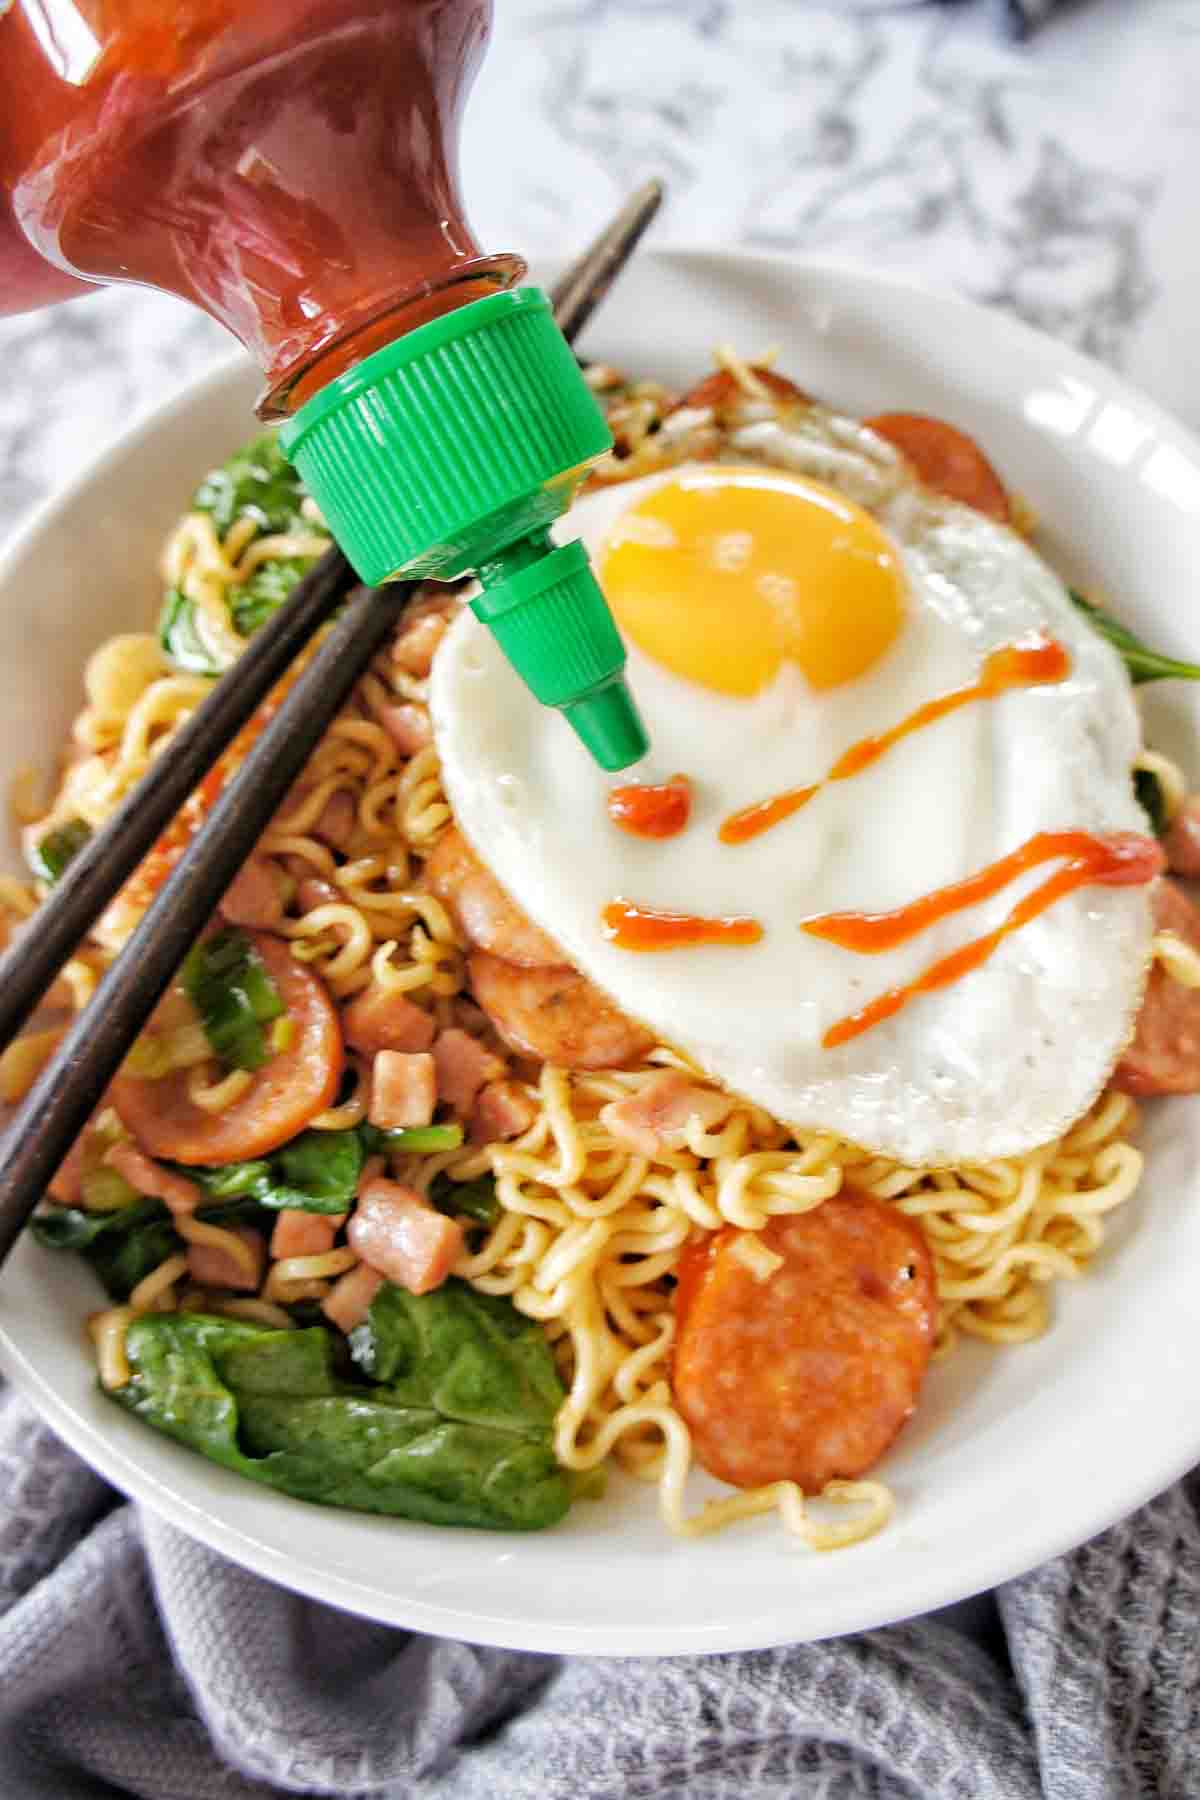 Sriracha sauce being poured onto fried egg on noodle bowl